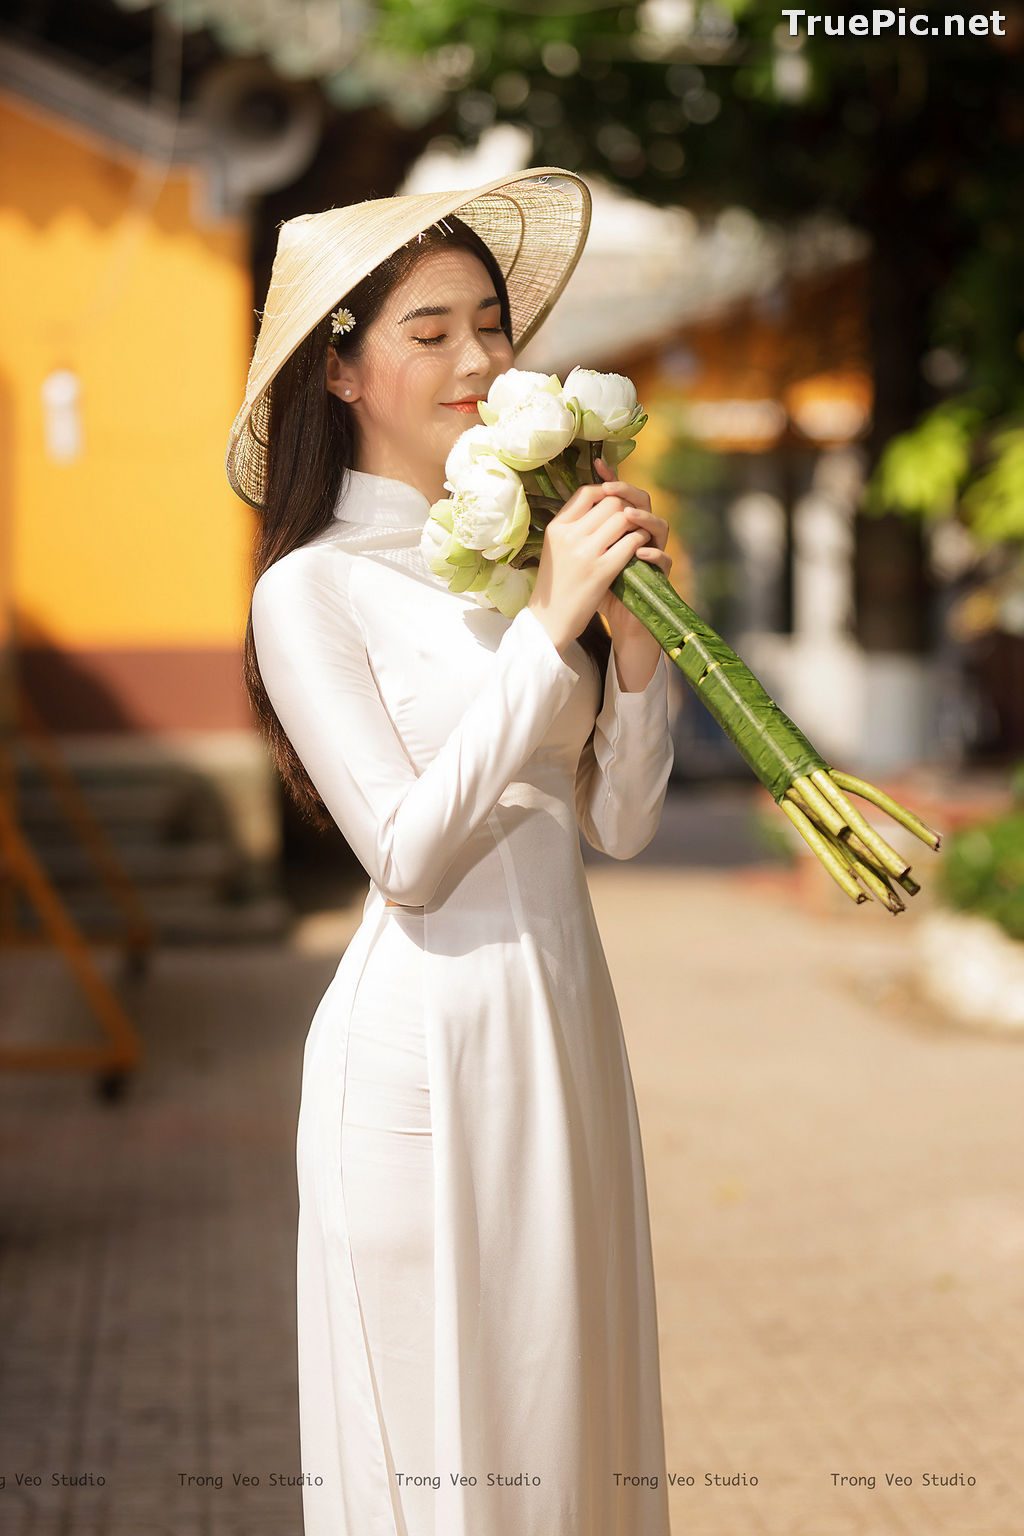 Image The Beauty of Vietnamese Girls with Traditional Dress (Ao Dai) #2 - TruePic.net - Picture-6